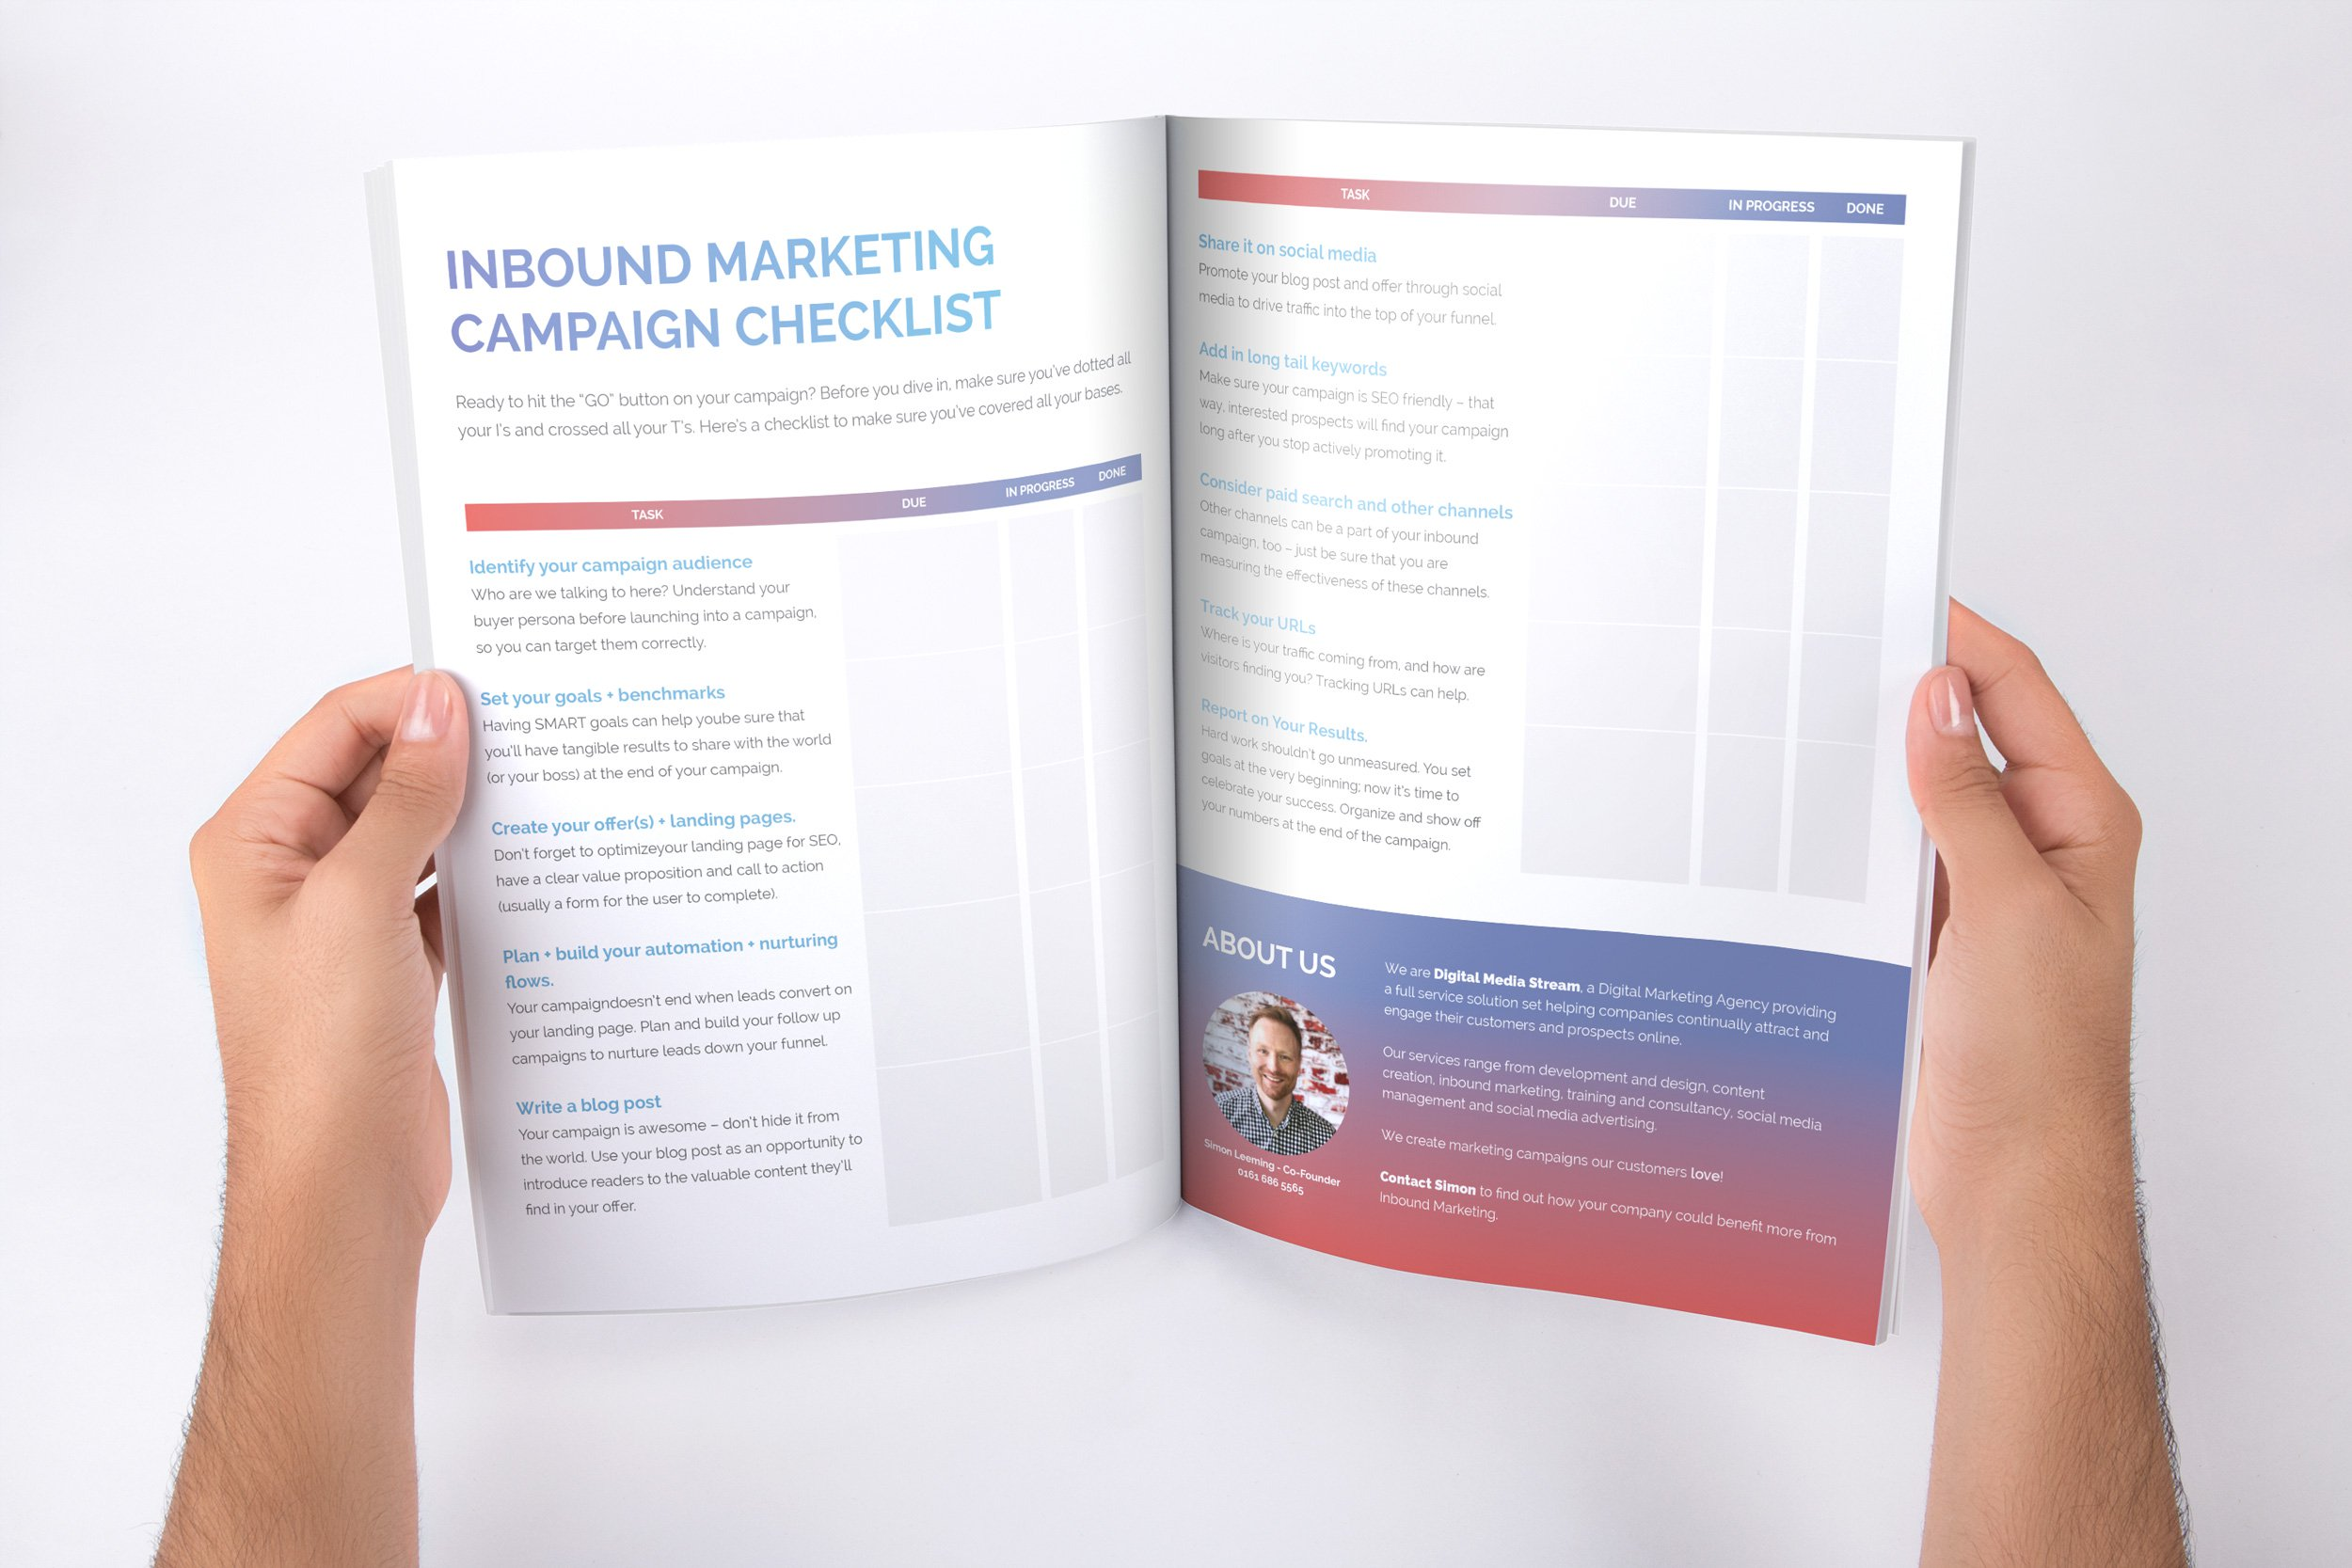 INBOUND MARKETING CHECKLIST - Preview